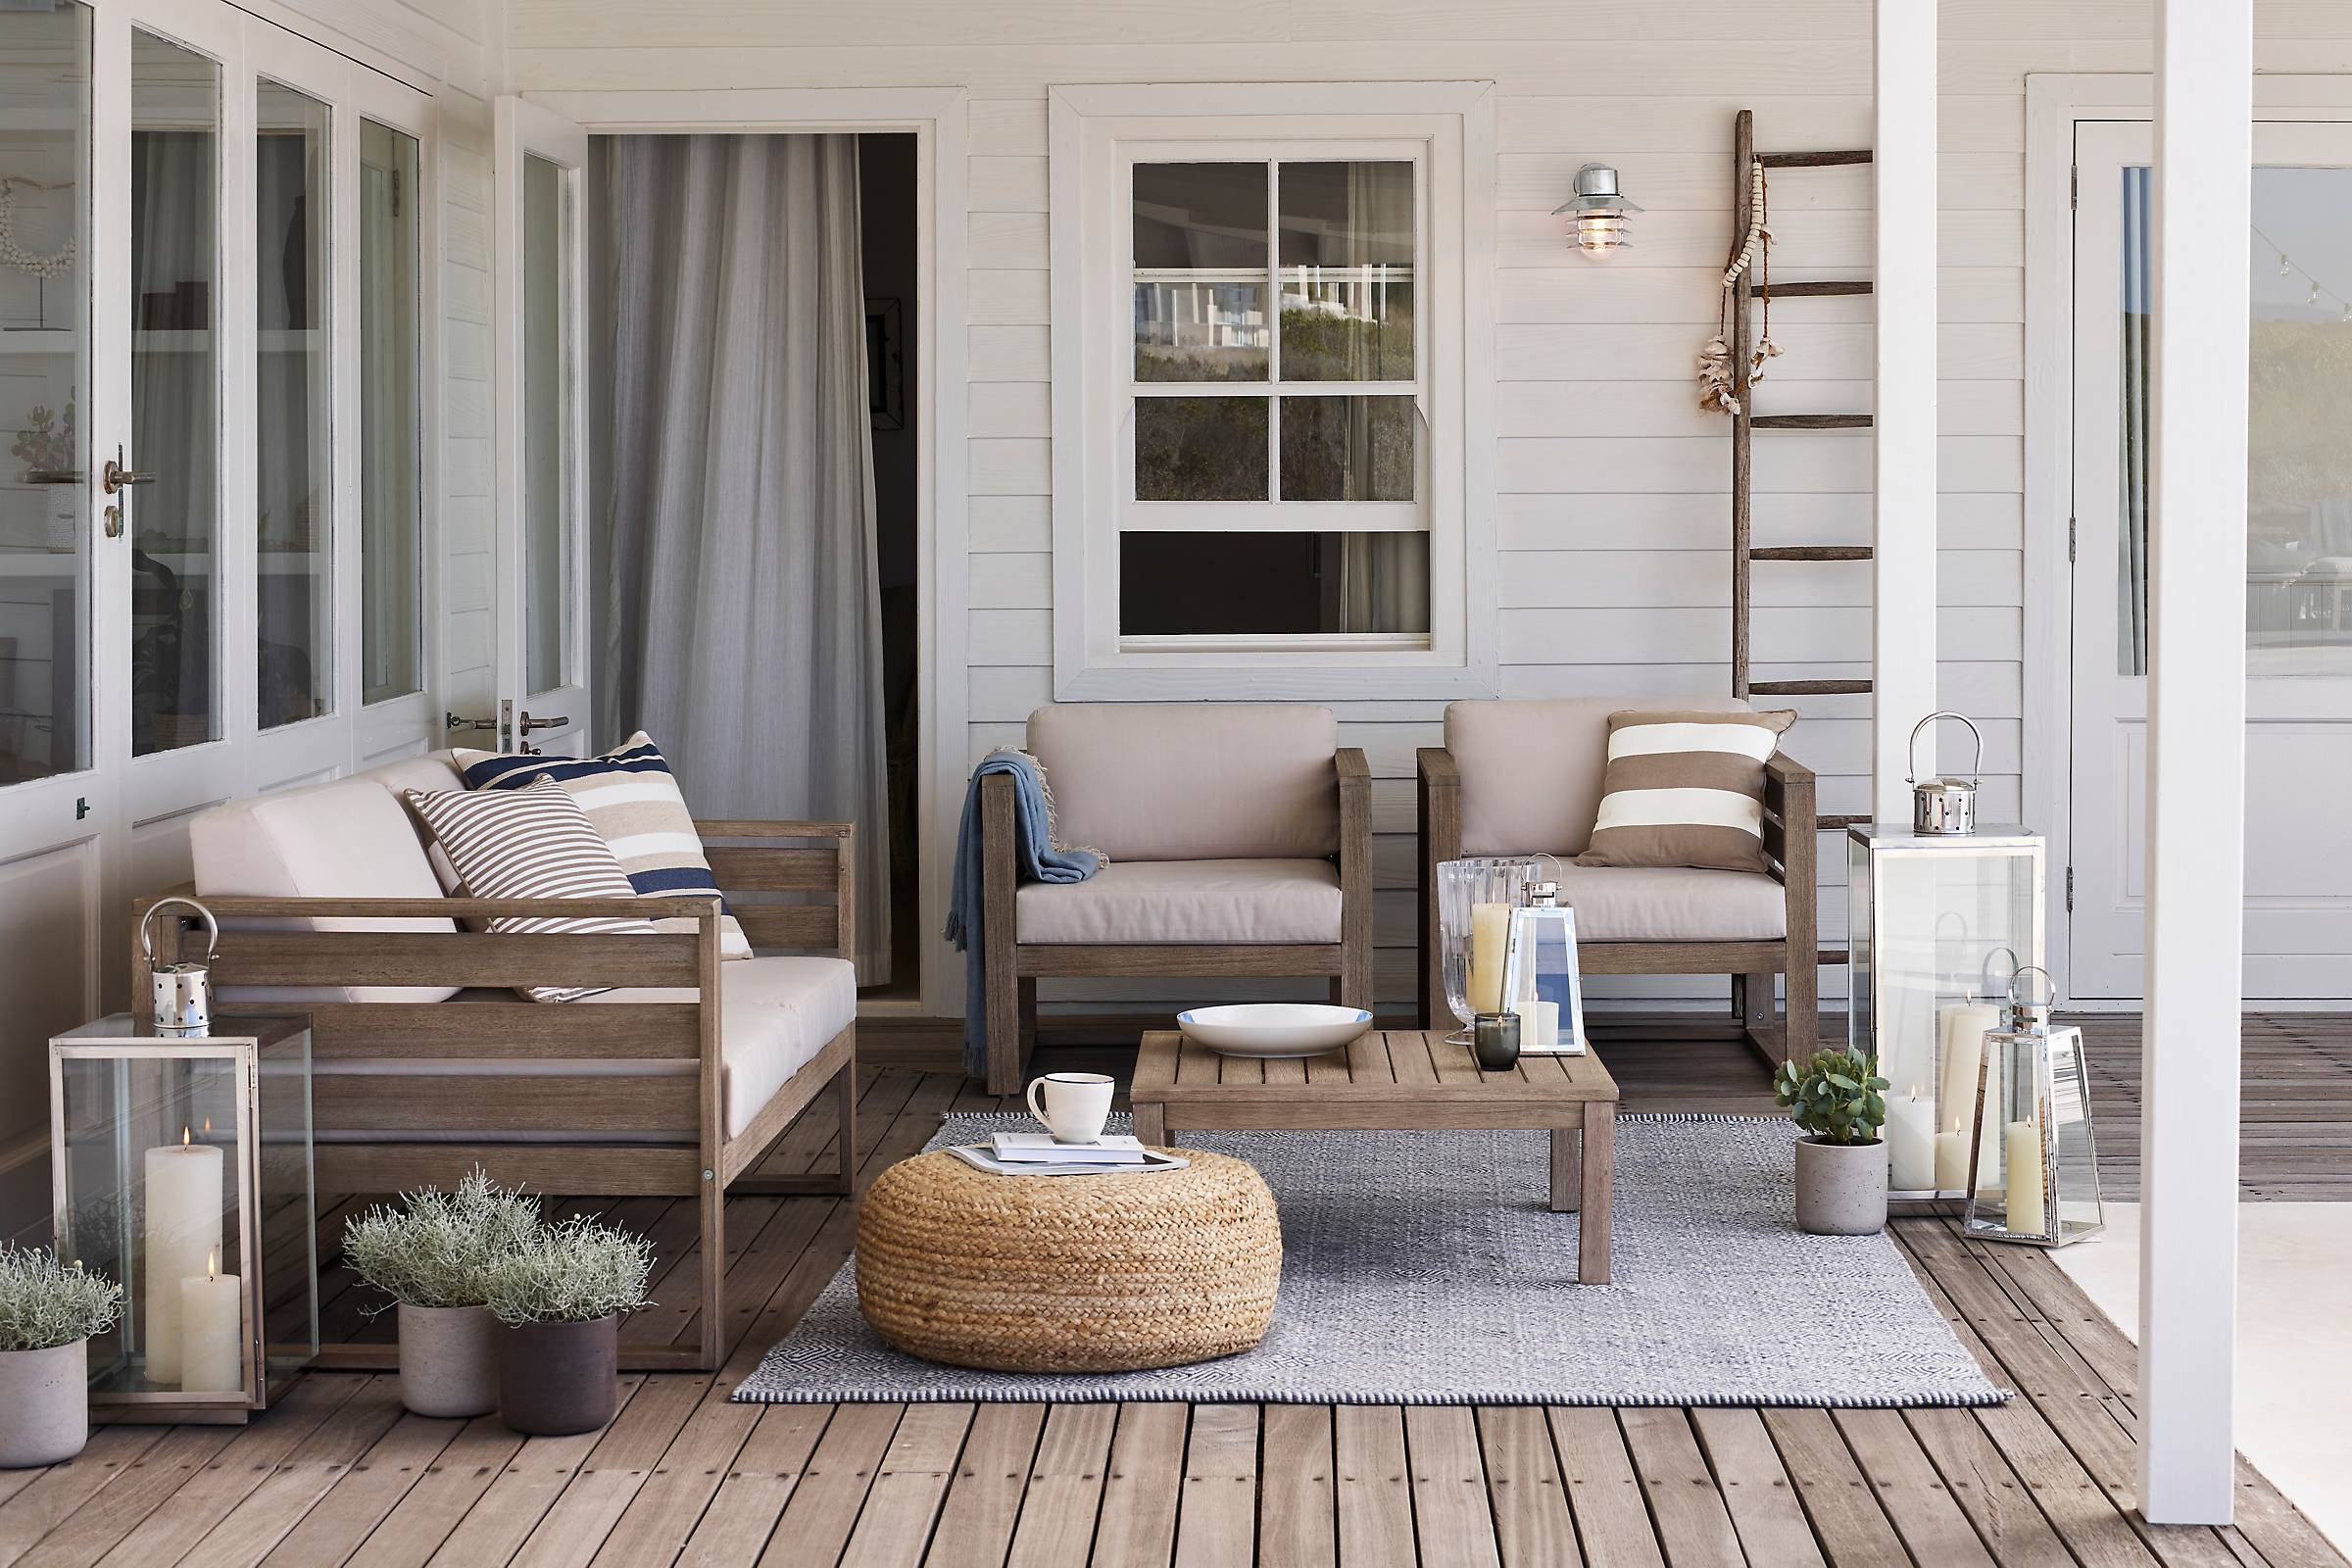 7 Outdoor Living Ideas